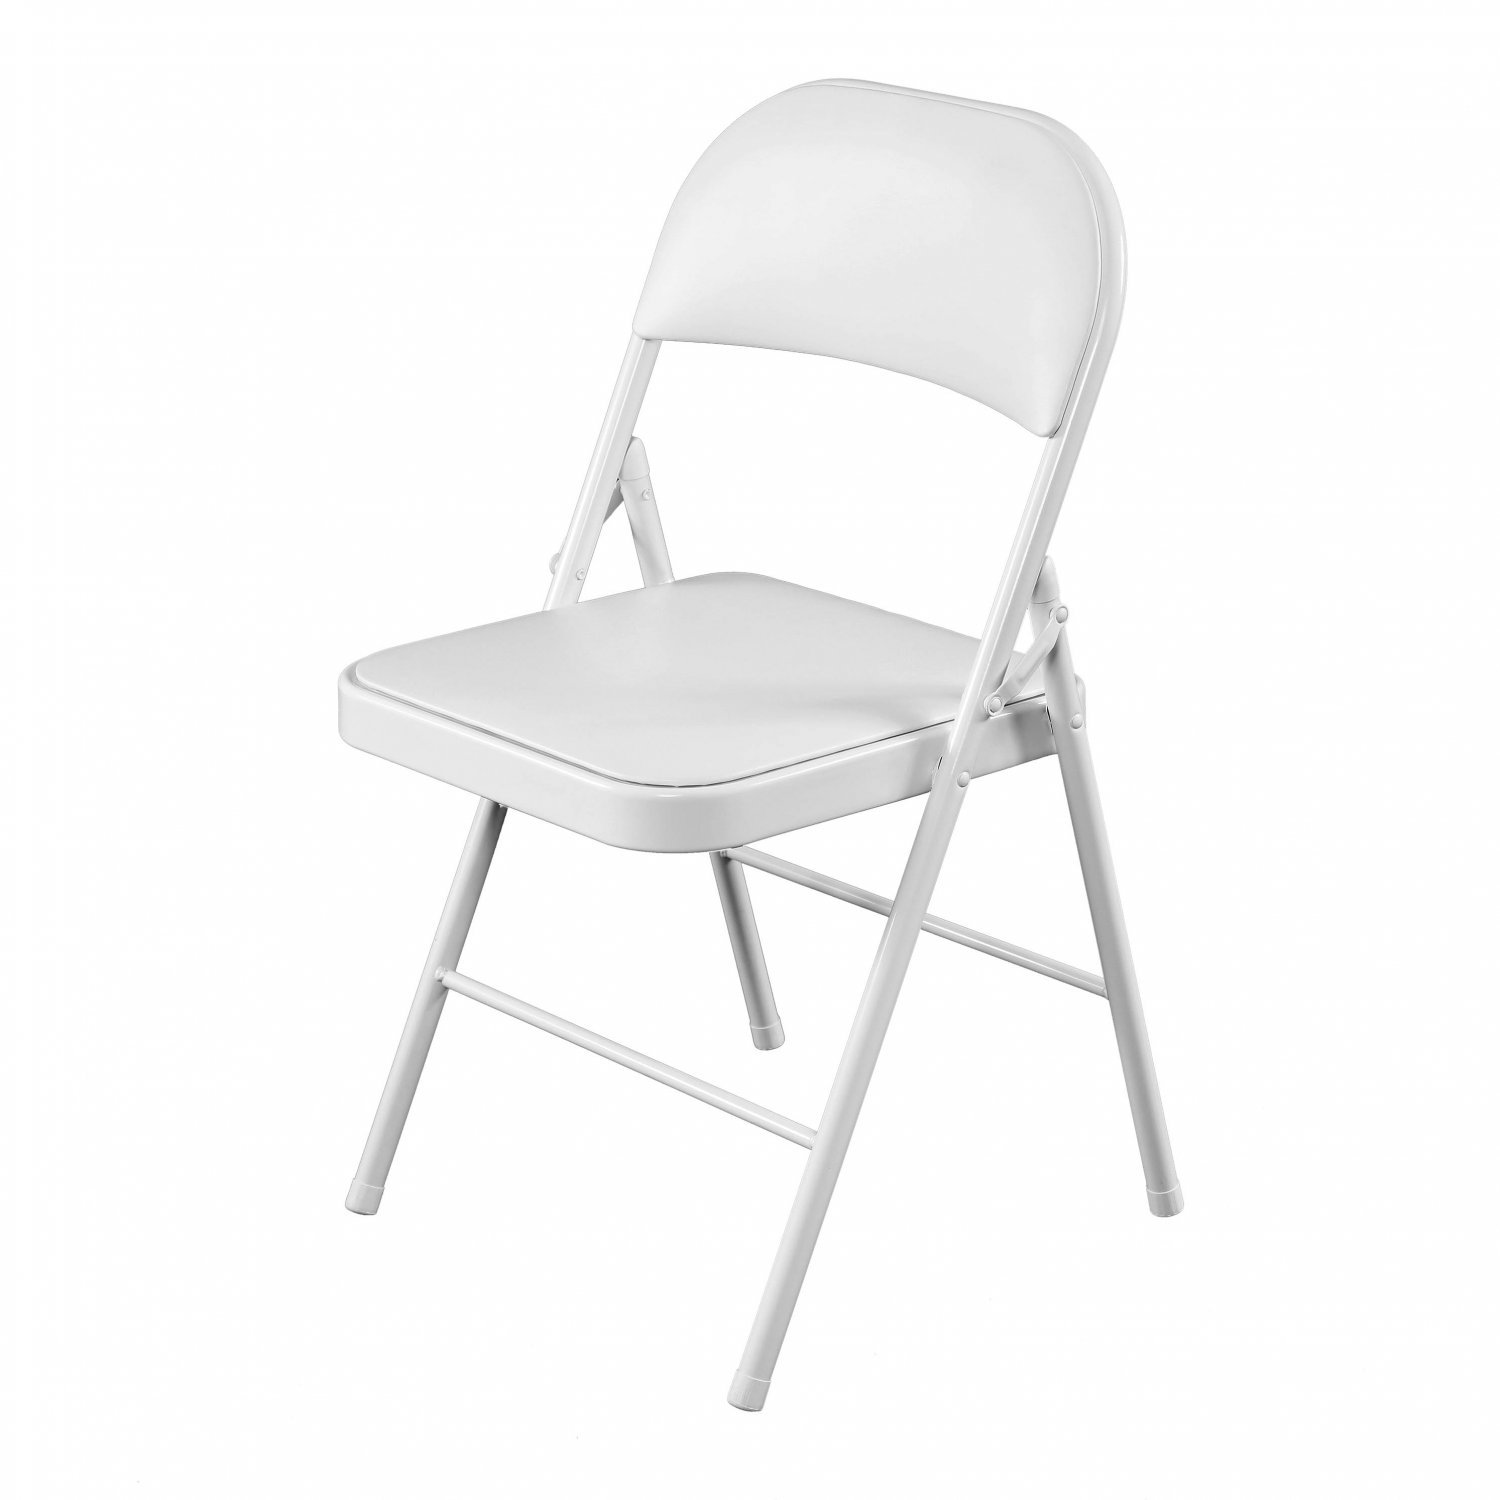 Heavy Duty White Padded Folding Metal Desk Office Chair Seat